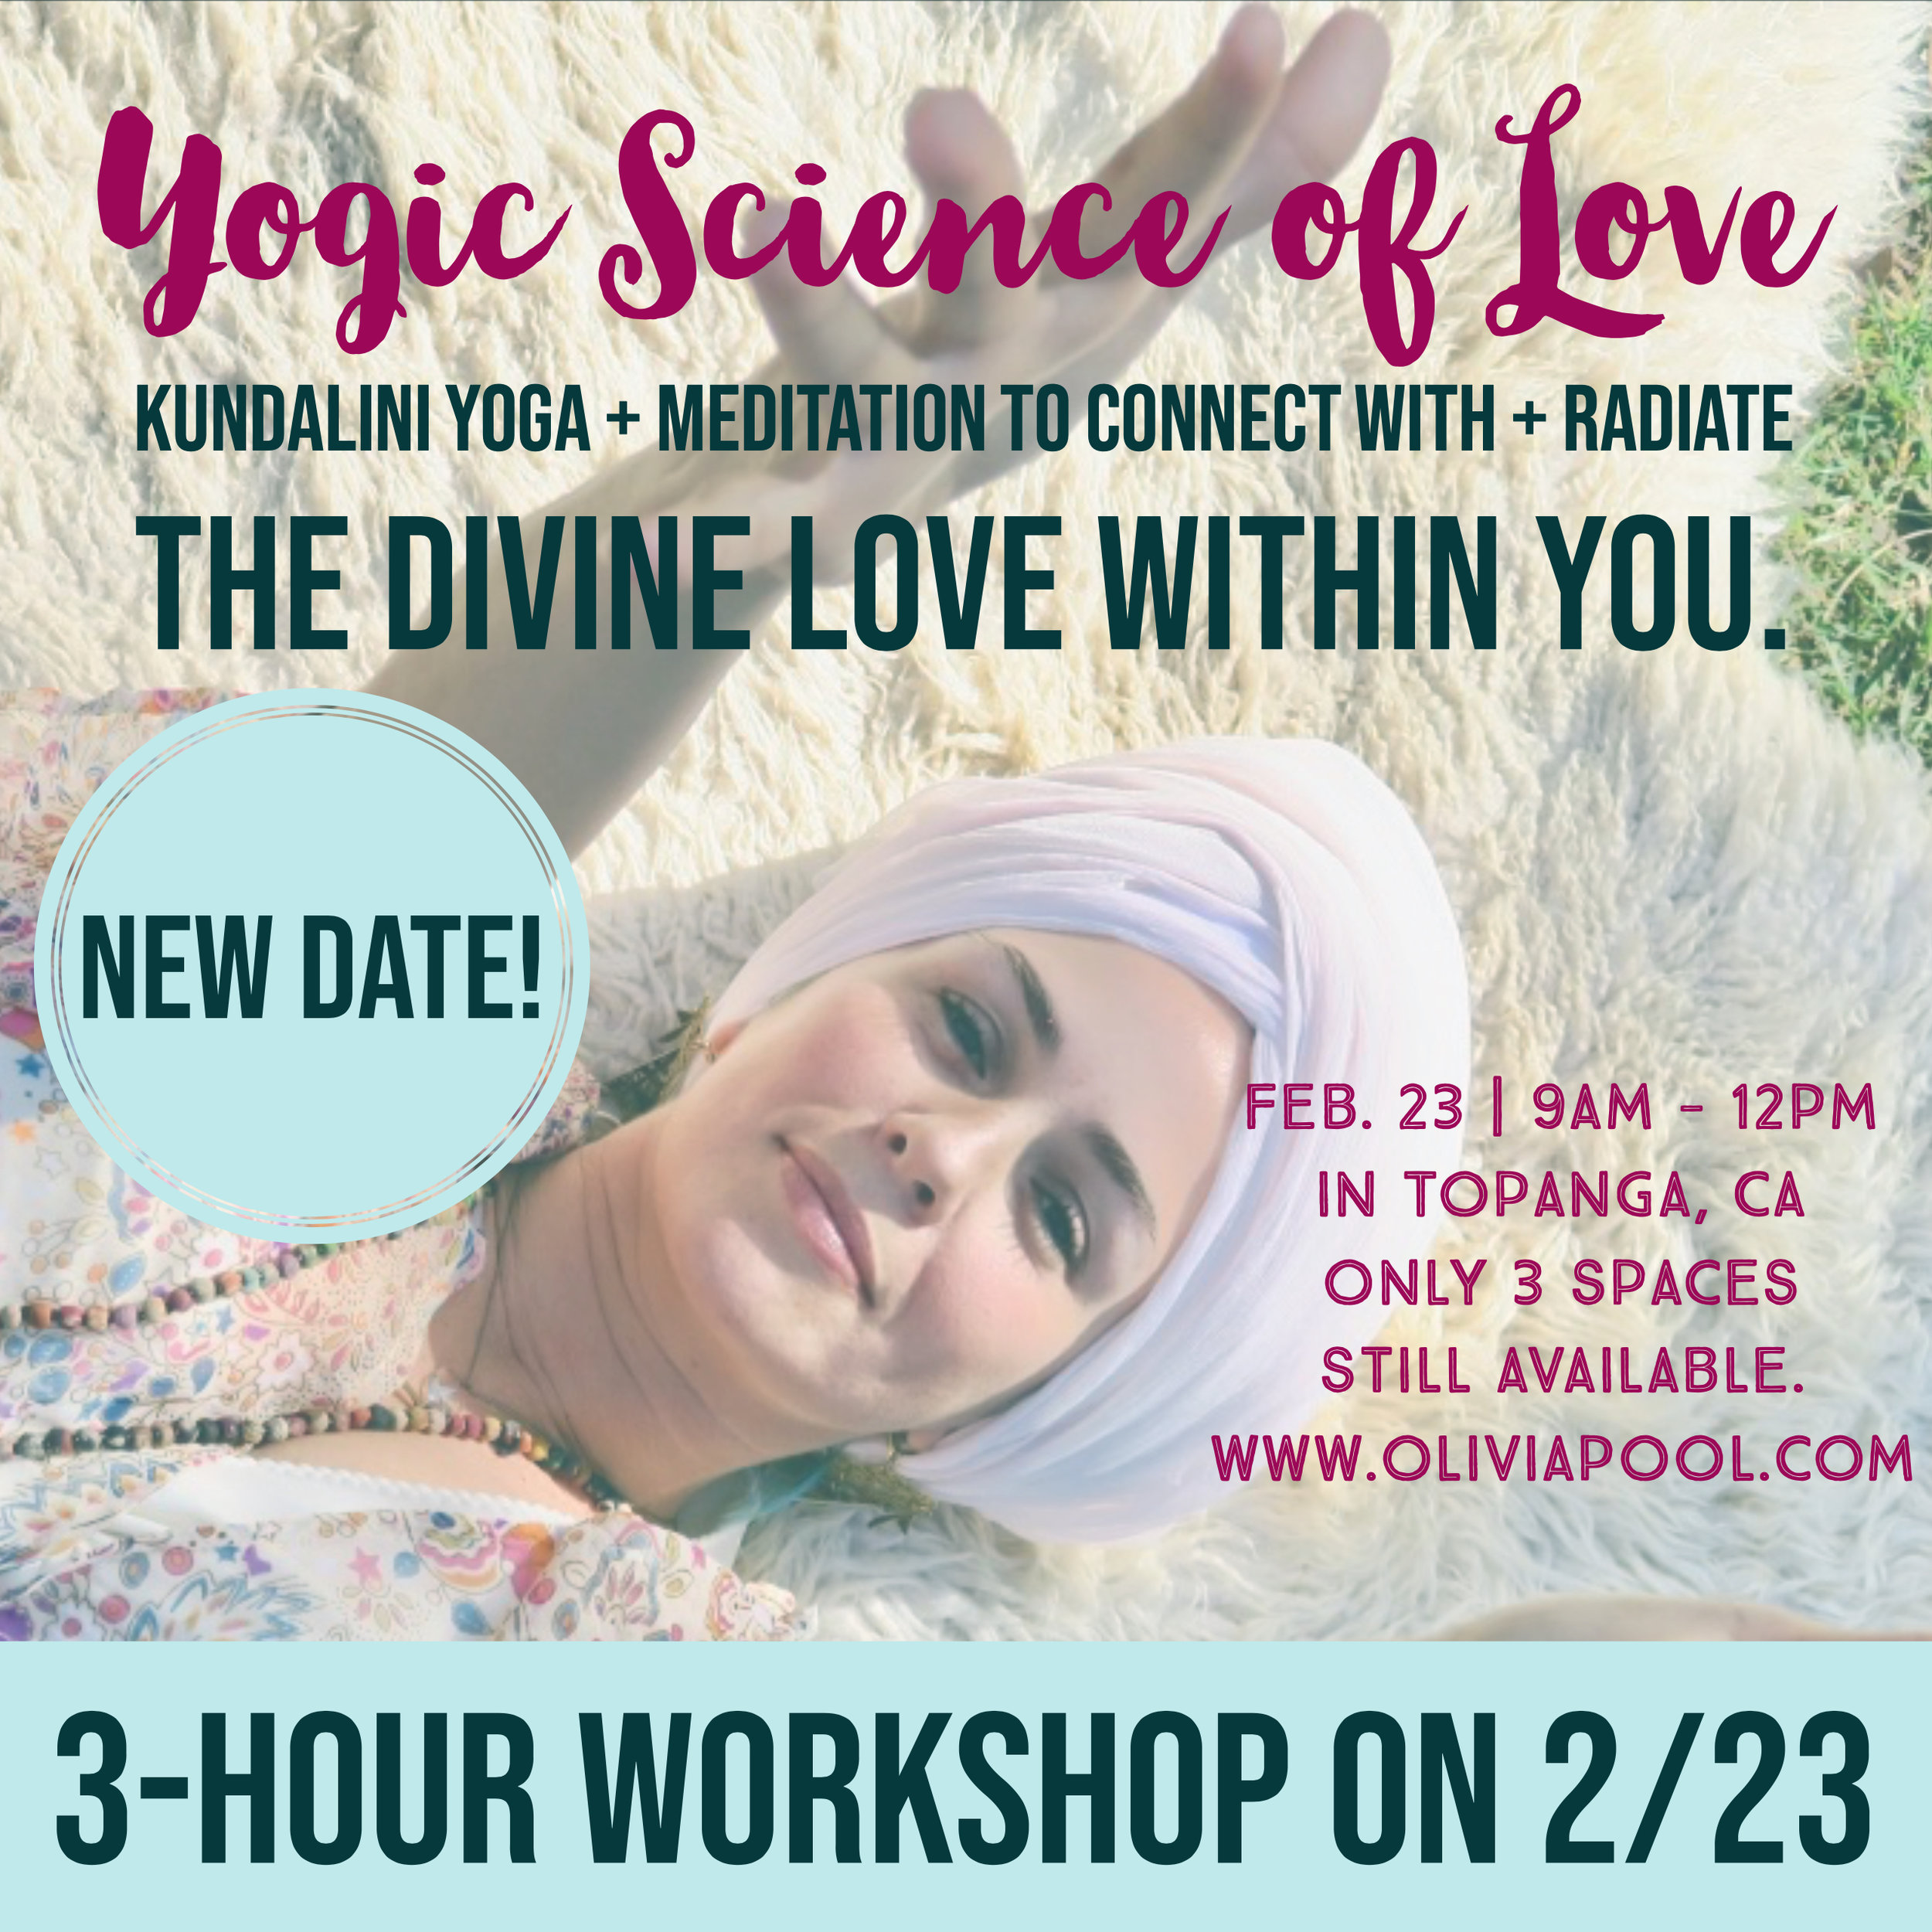 yogic science of love Copy 3-2.jpg